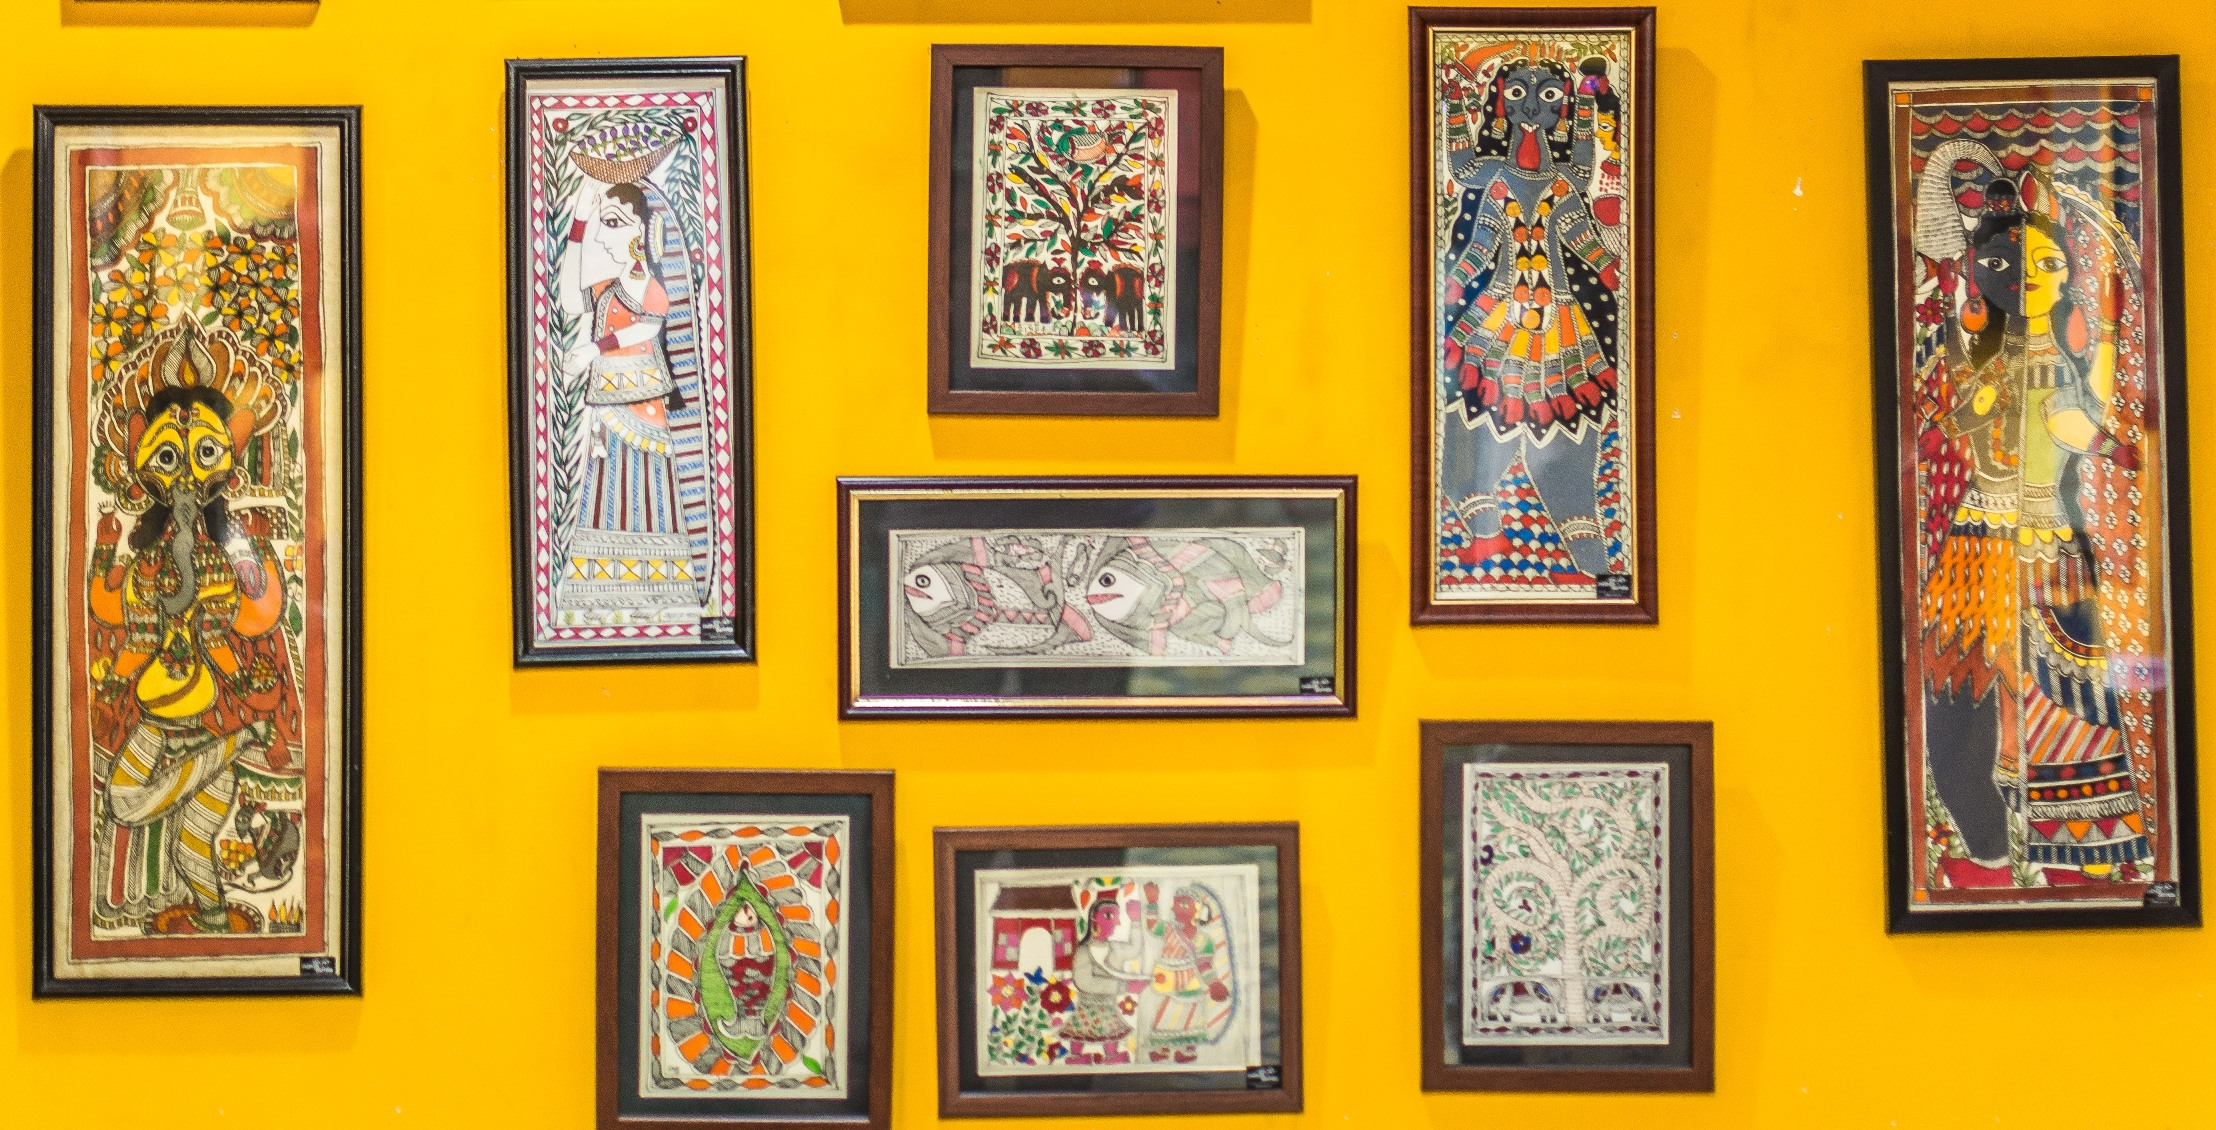 Home mithilasmita for Artworks for sale online